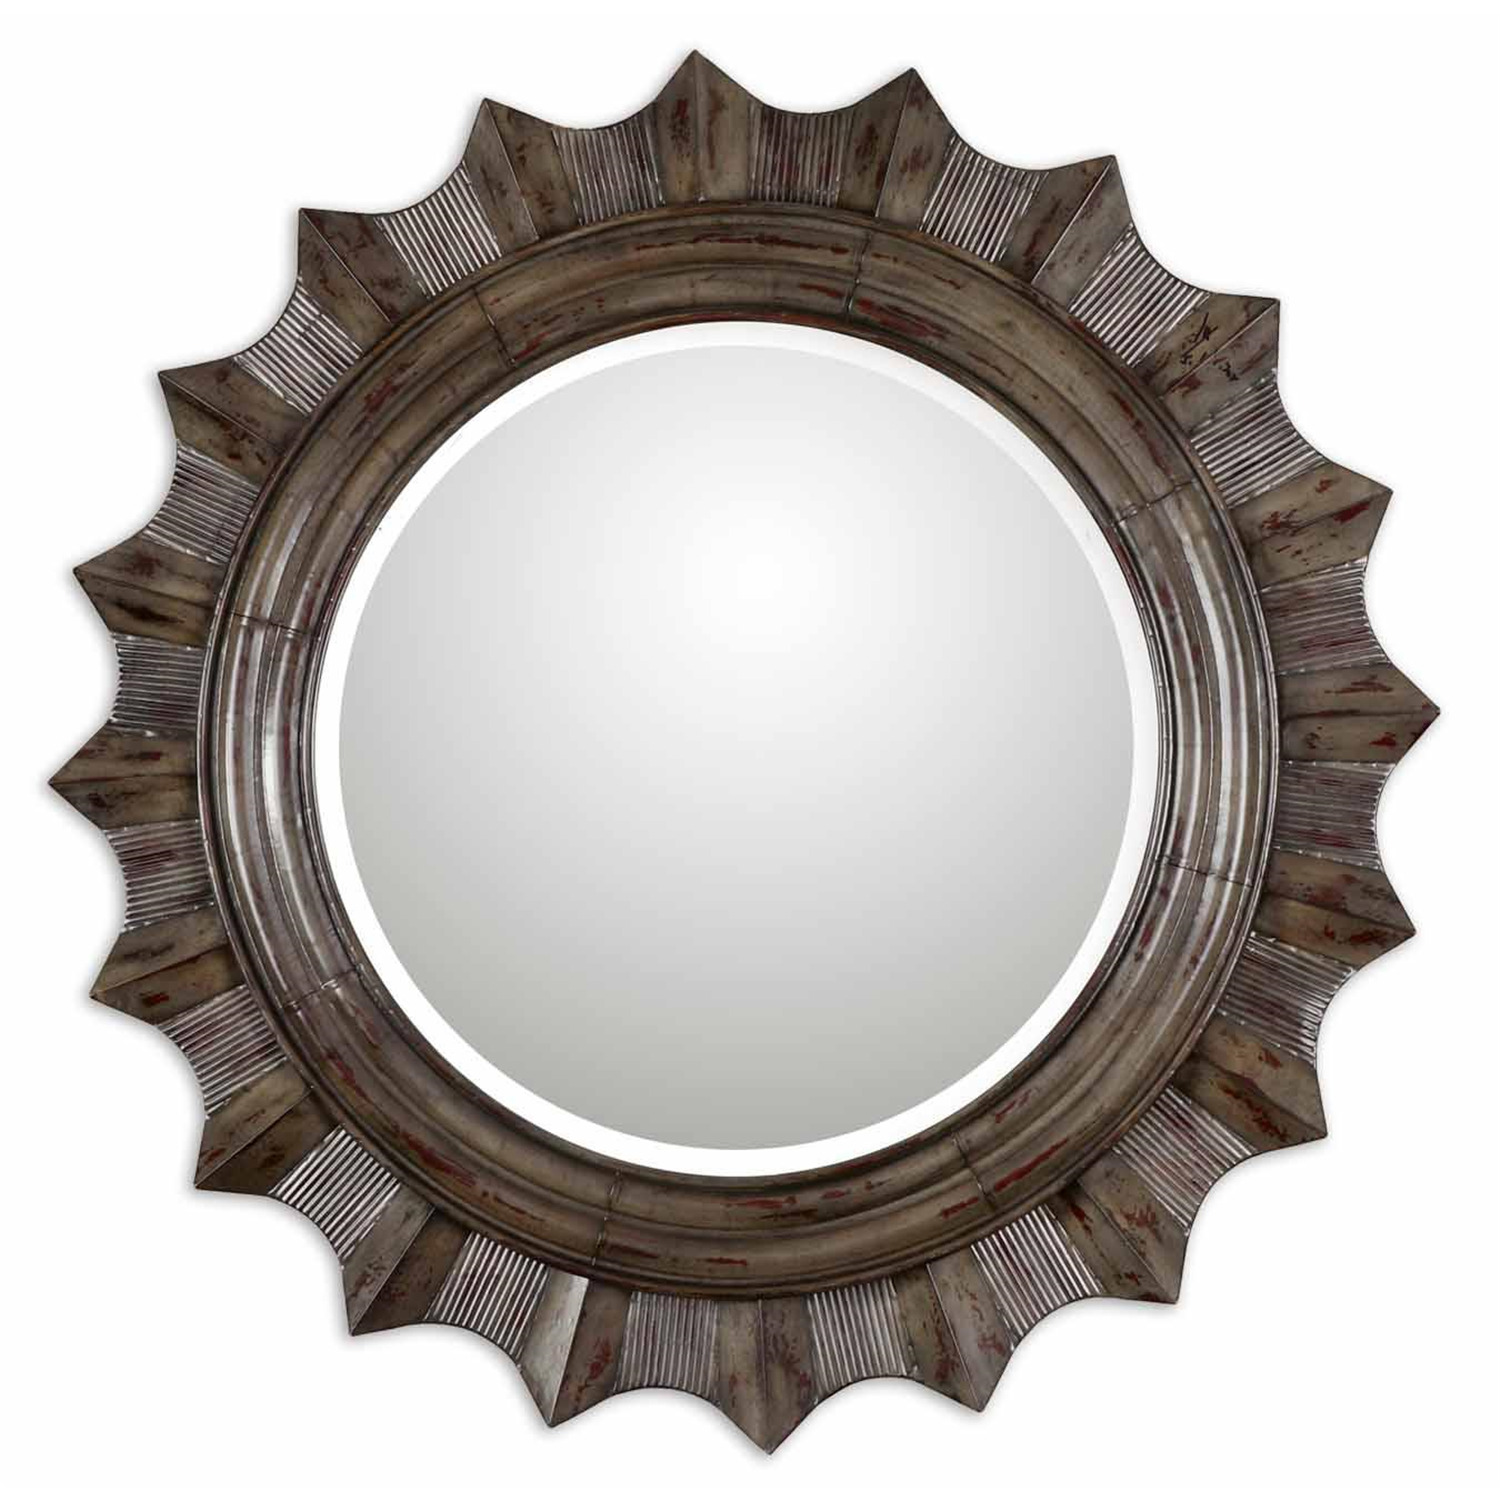 Decorative mirrors large wall mirrors round mirror large for Decorative wall mirrors